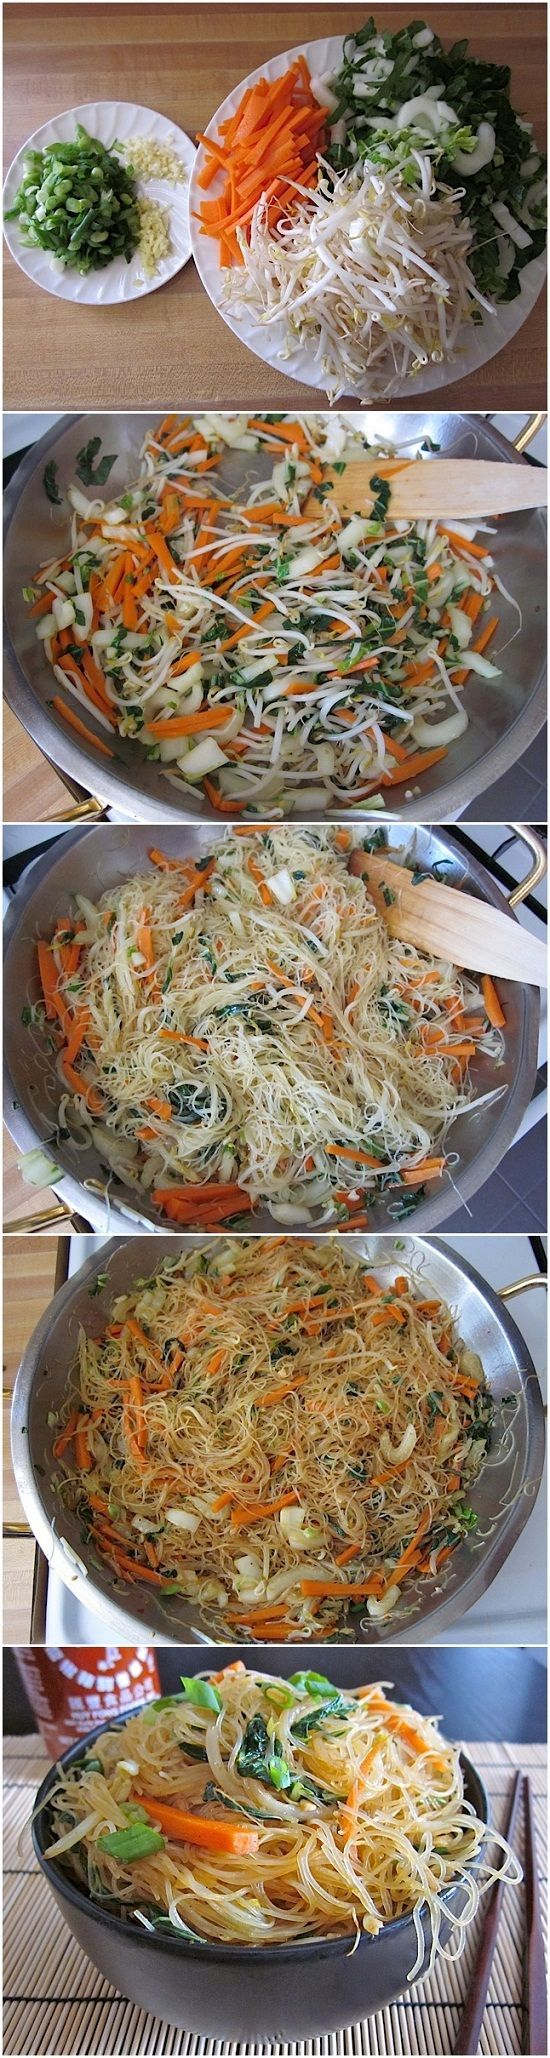 Singapore Noodles Recipe my favorite food stir fry noodles [ http://Borsarifoods.com ] #dinner #recipes #food